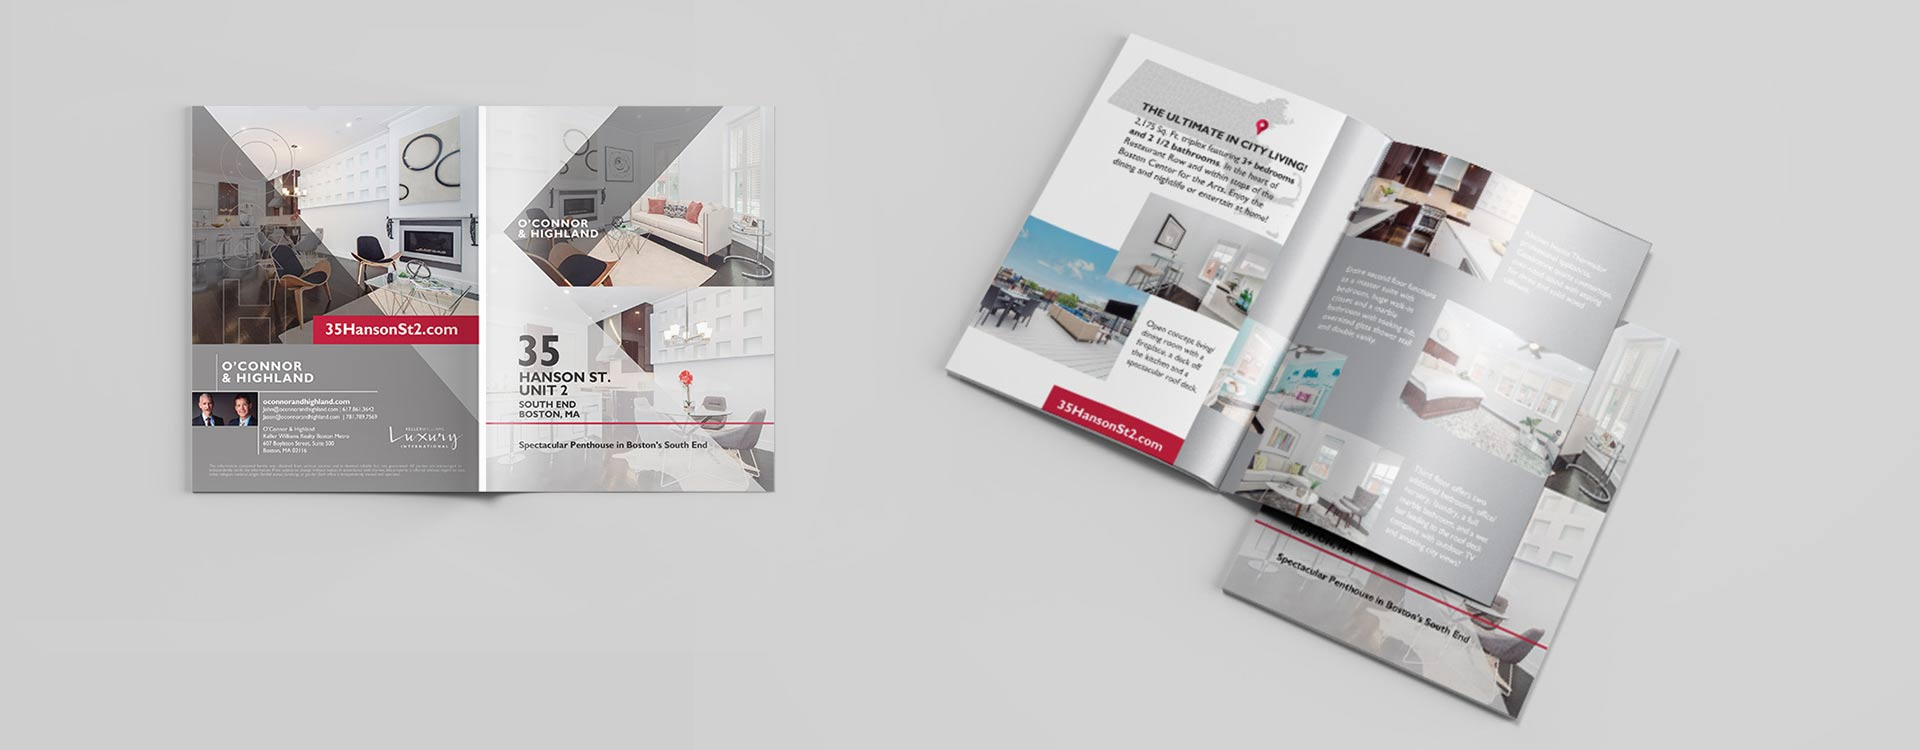 opne-house-brochure-ohr-for-website